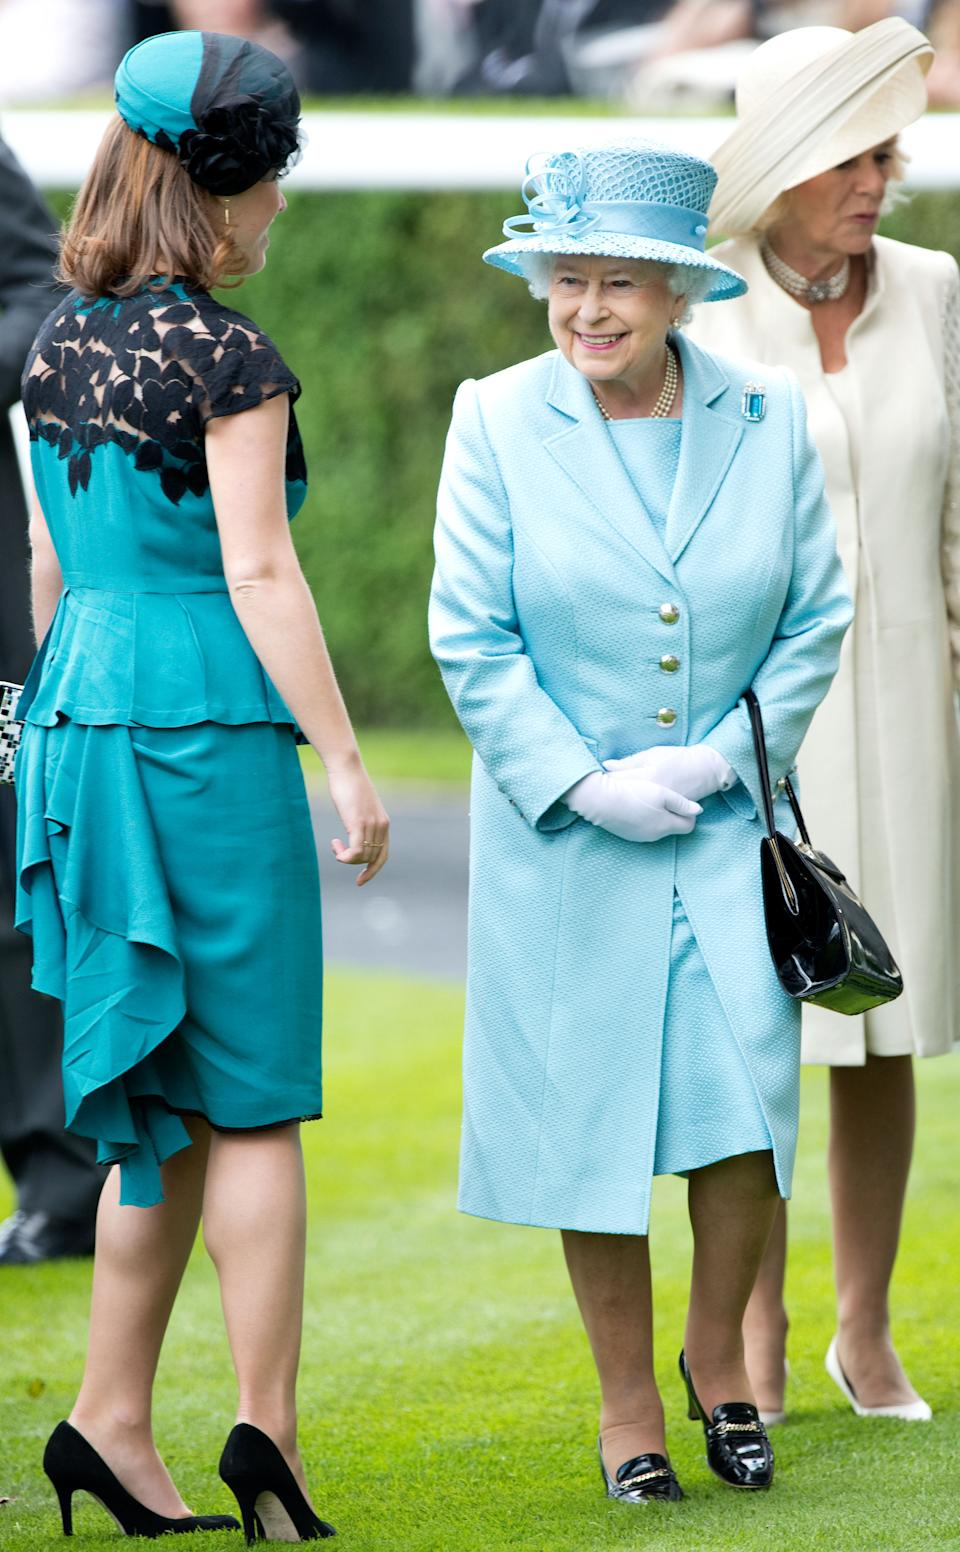 ASCOT, ENGLAND - JUNE 19:  Queen Elizabeth II and Princess Eugenie attend day 1 of Royal Ascot 2012 at Ascot Racecourse on June 19, 2012 in Ascot, United Kingdom. (Photo by Samir Hussein/WireImage)